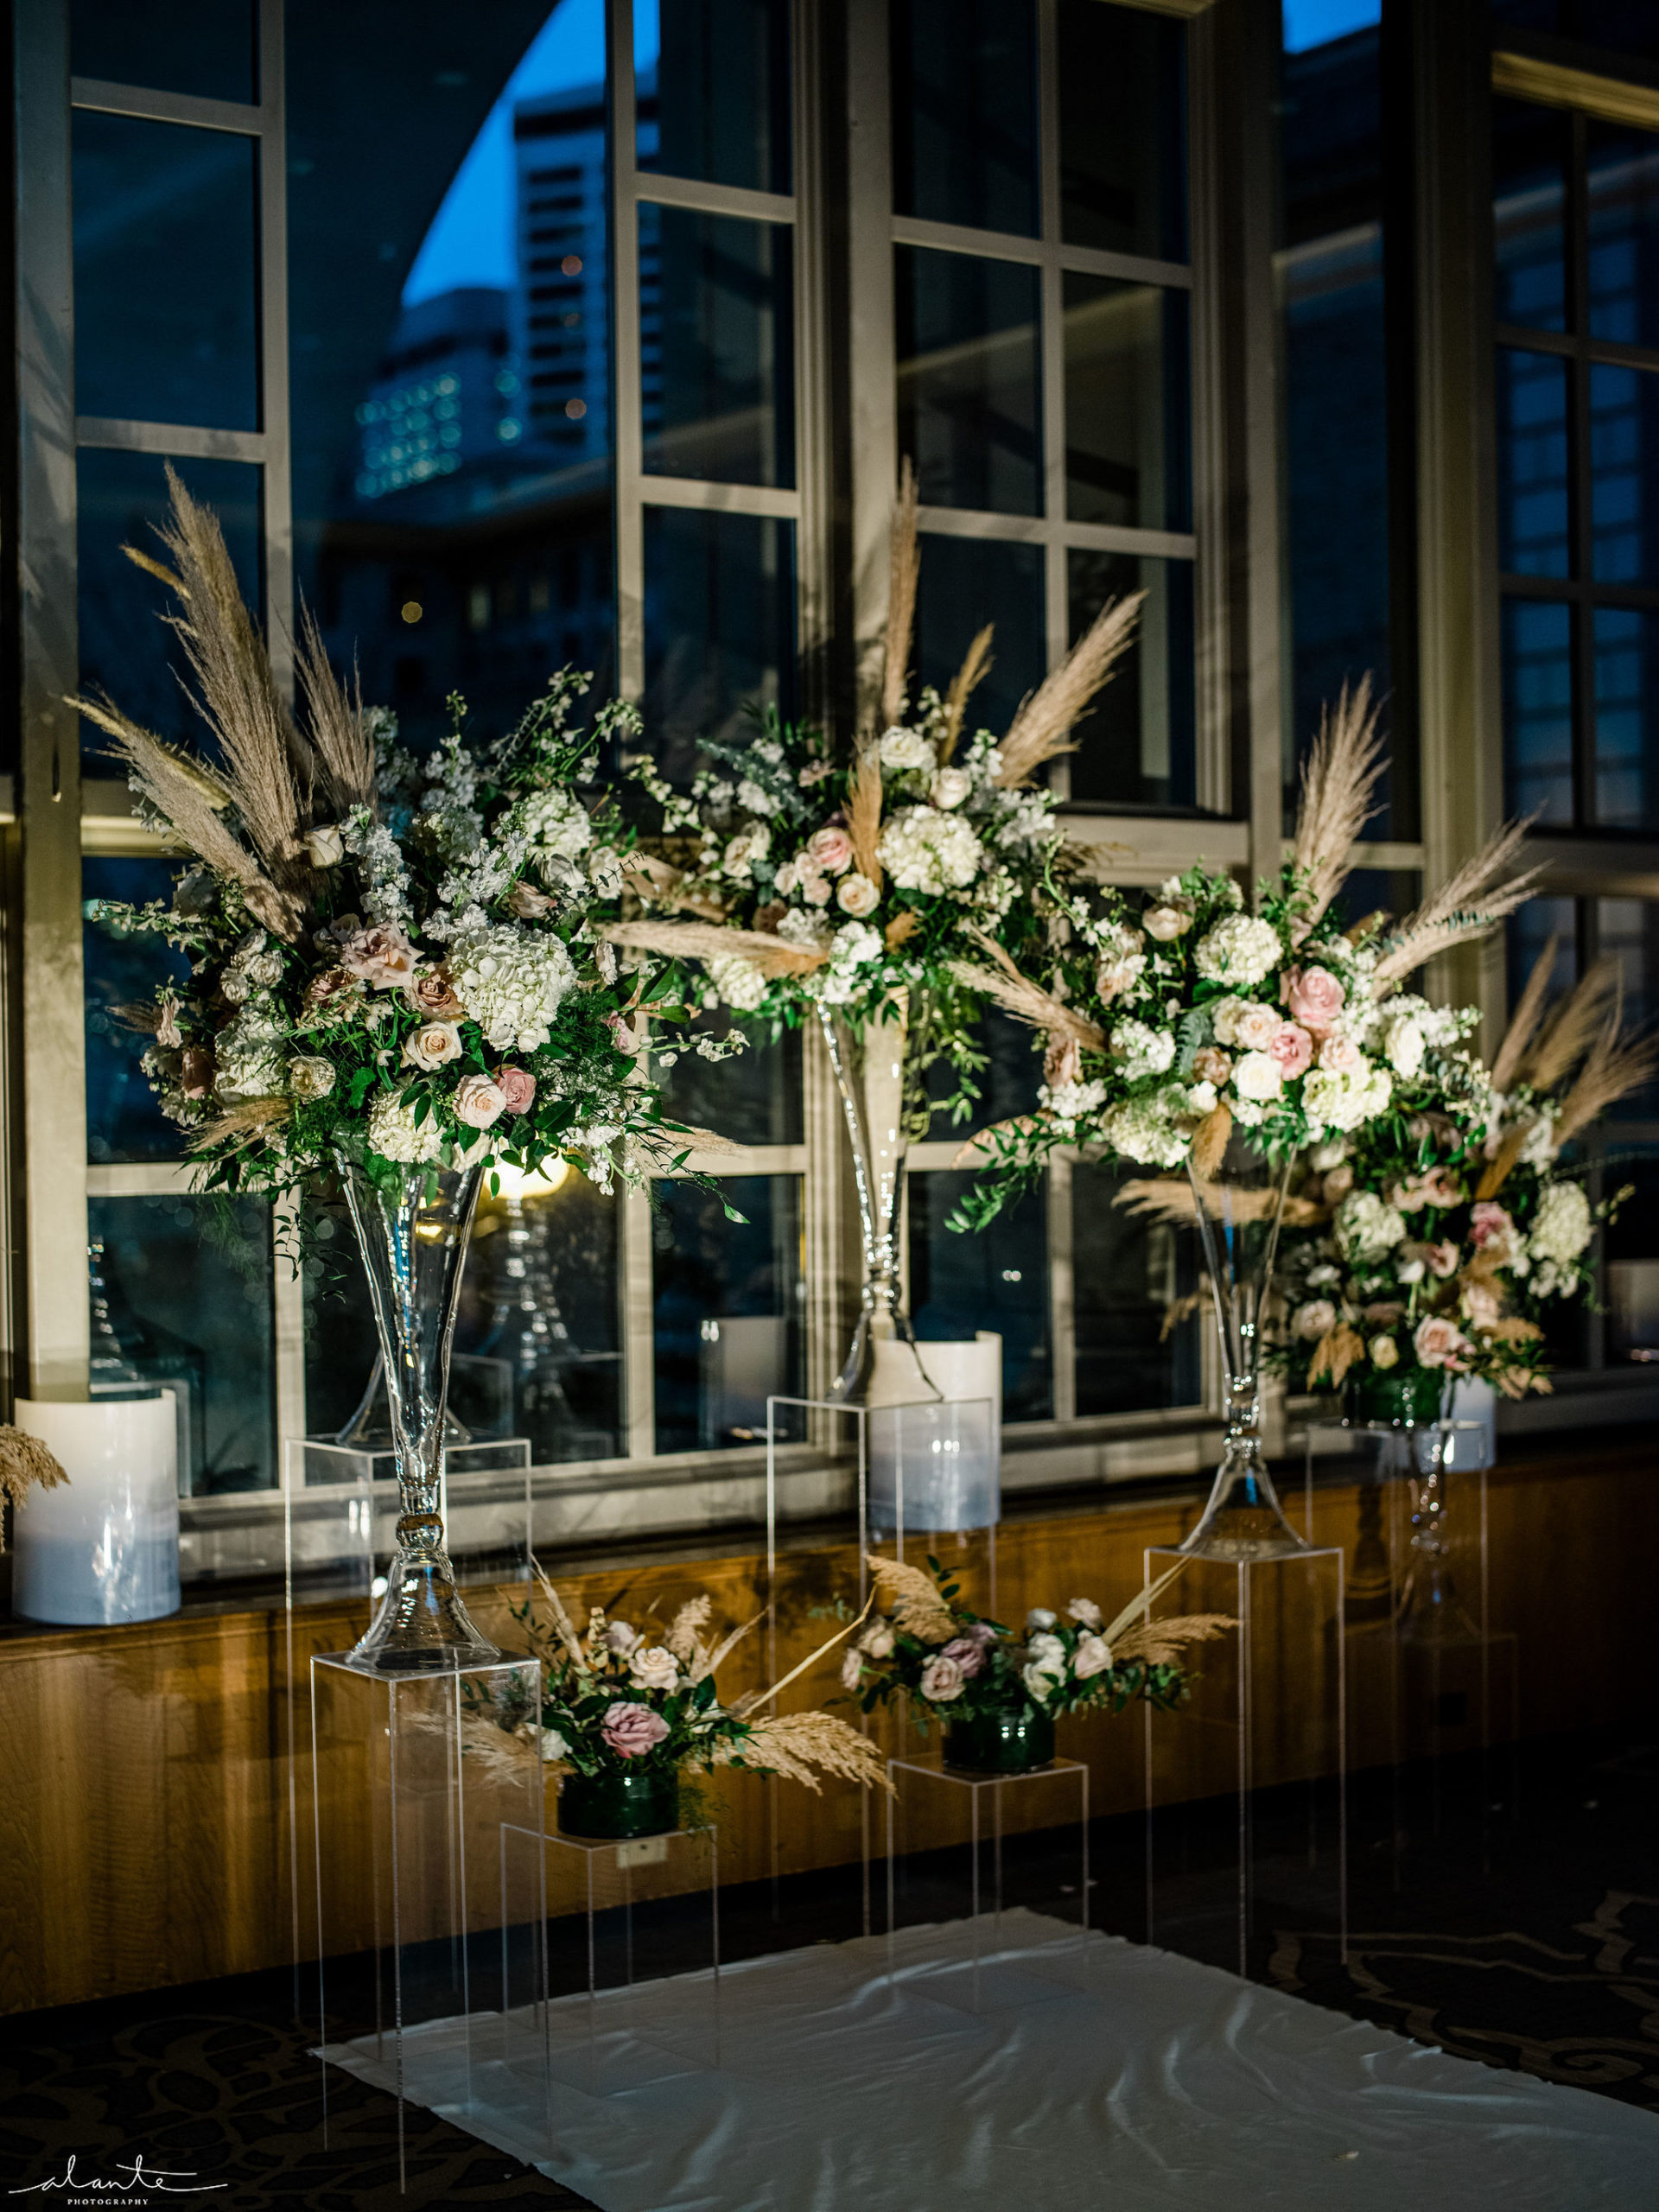 Dramatically lit winter ceremony set up with white and mauve floral grouped up front and placed on Lucite pillars.